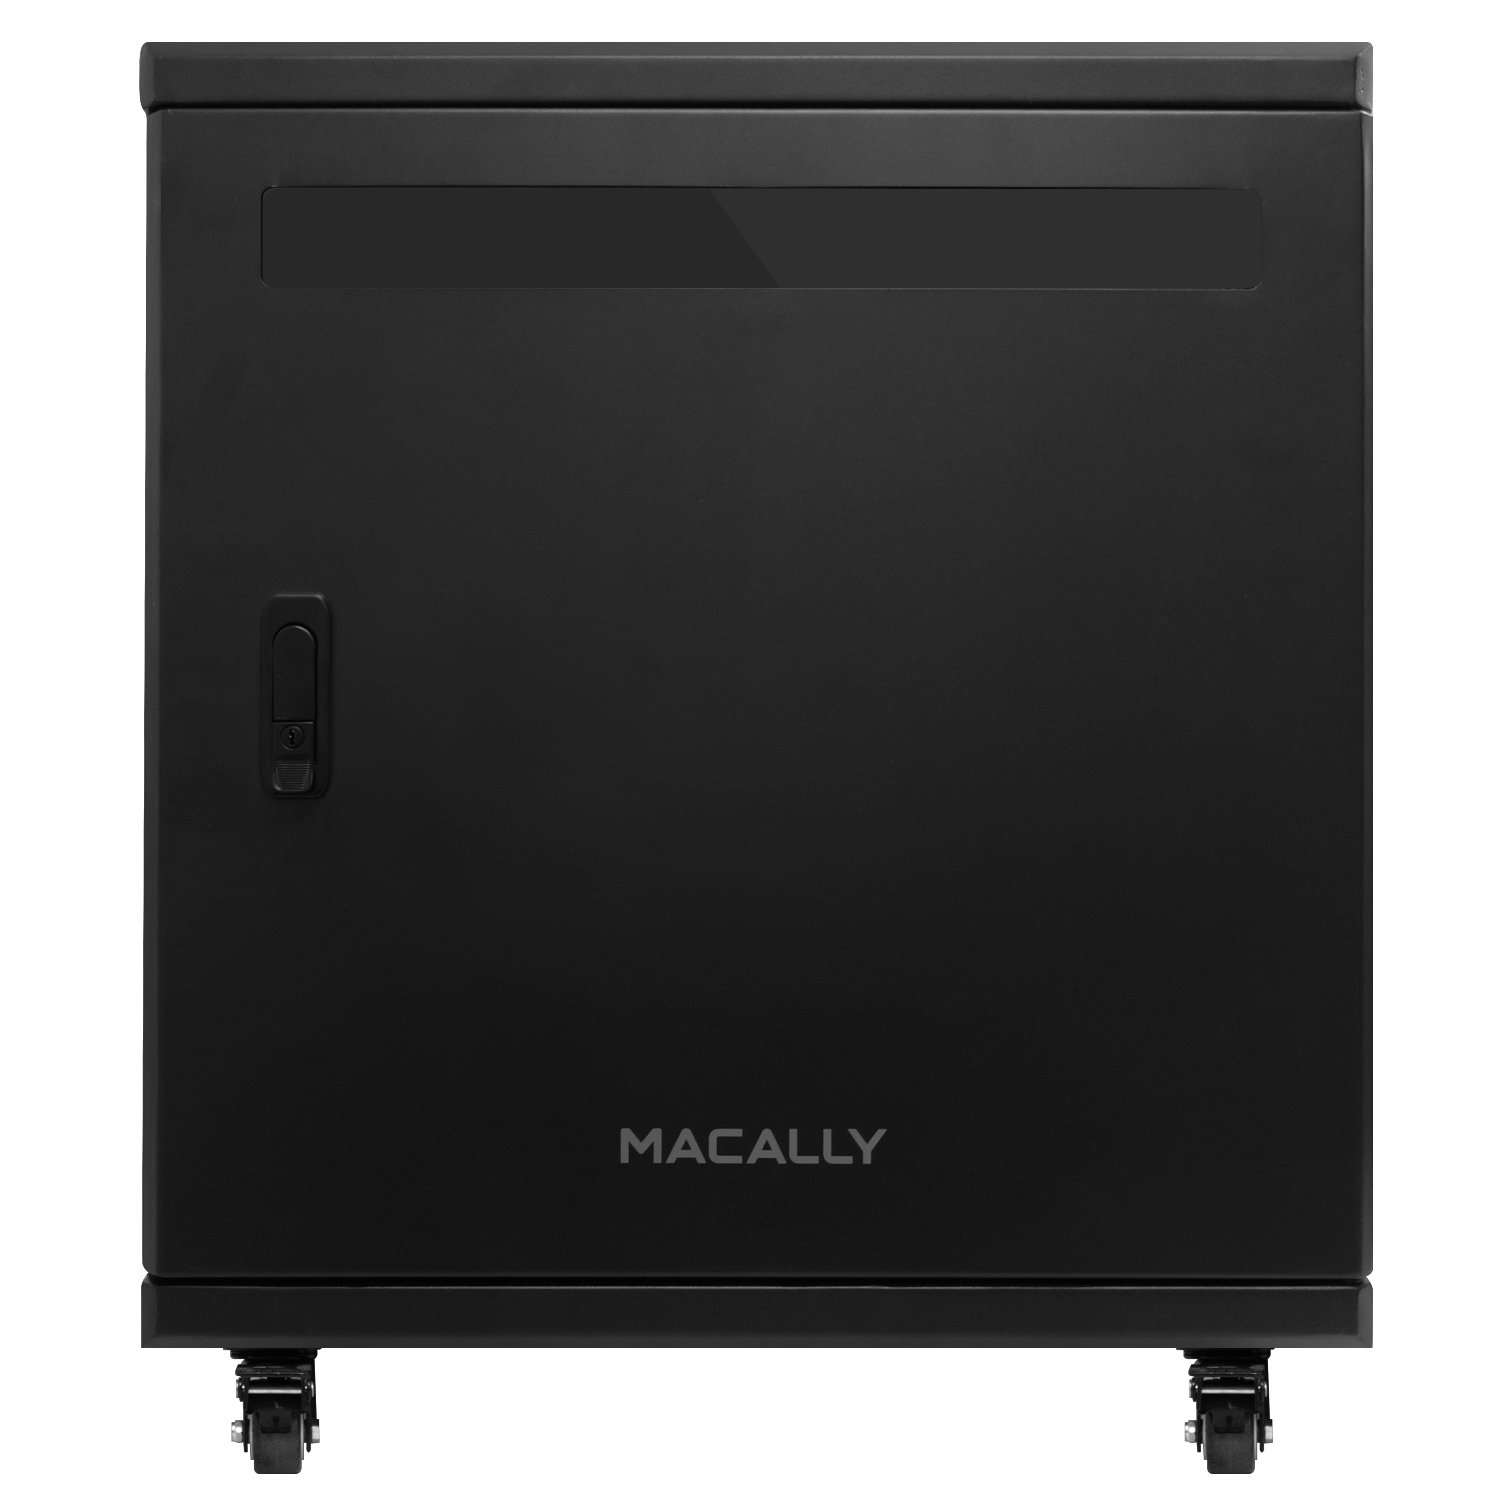 Macally 15 Bay Sync Charge Cabinet for Tablets and Notebooks with Lock for Schools and Businesses (DOCK15)